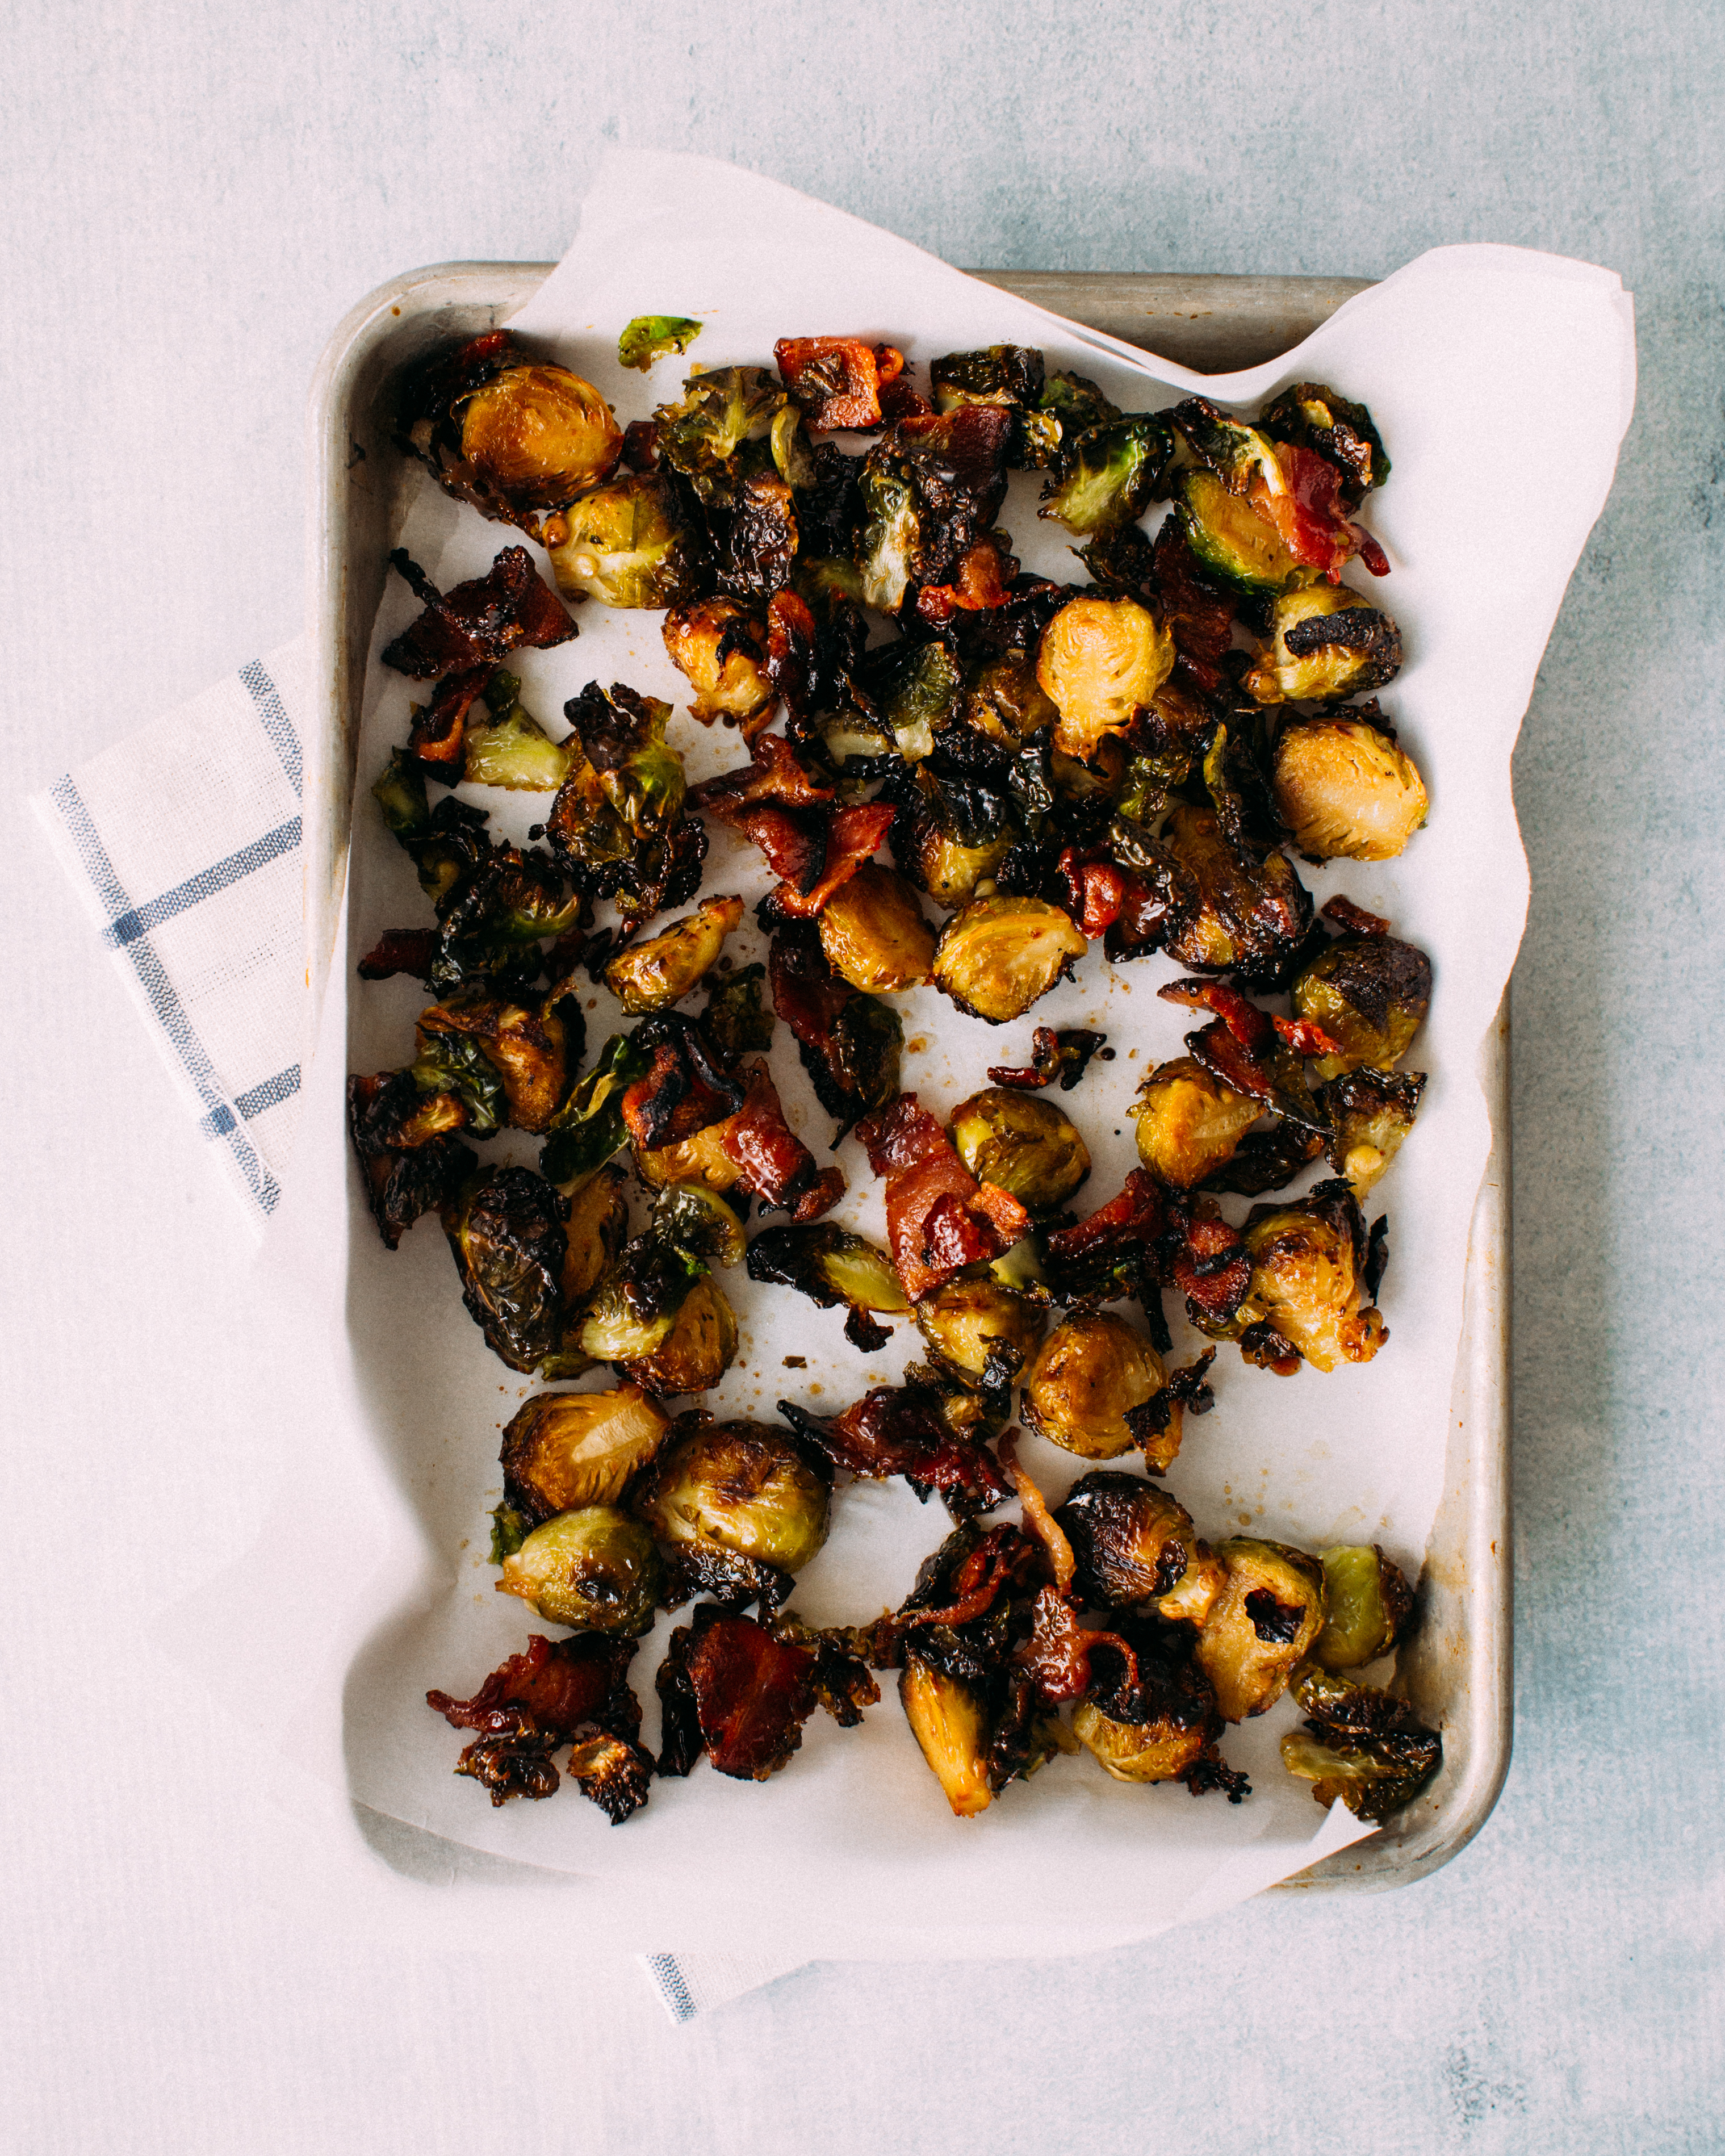 Candied Brussels Sprouts with bacon and maple syrup